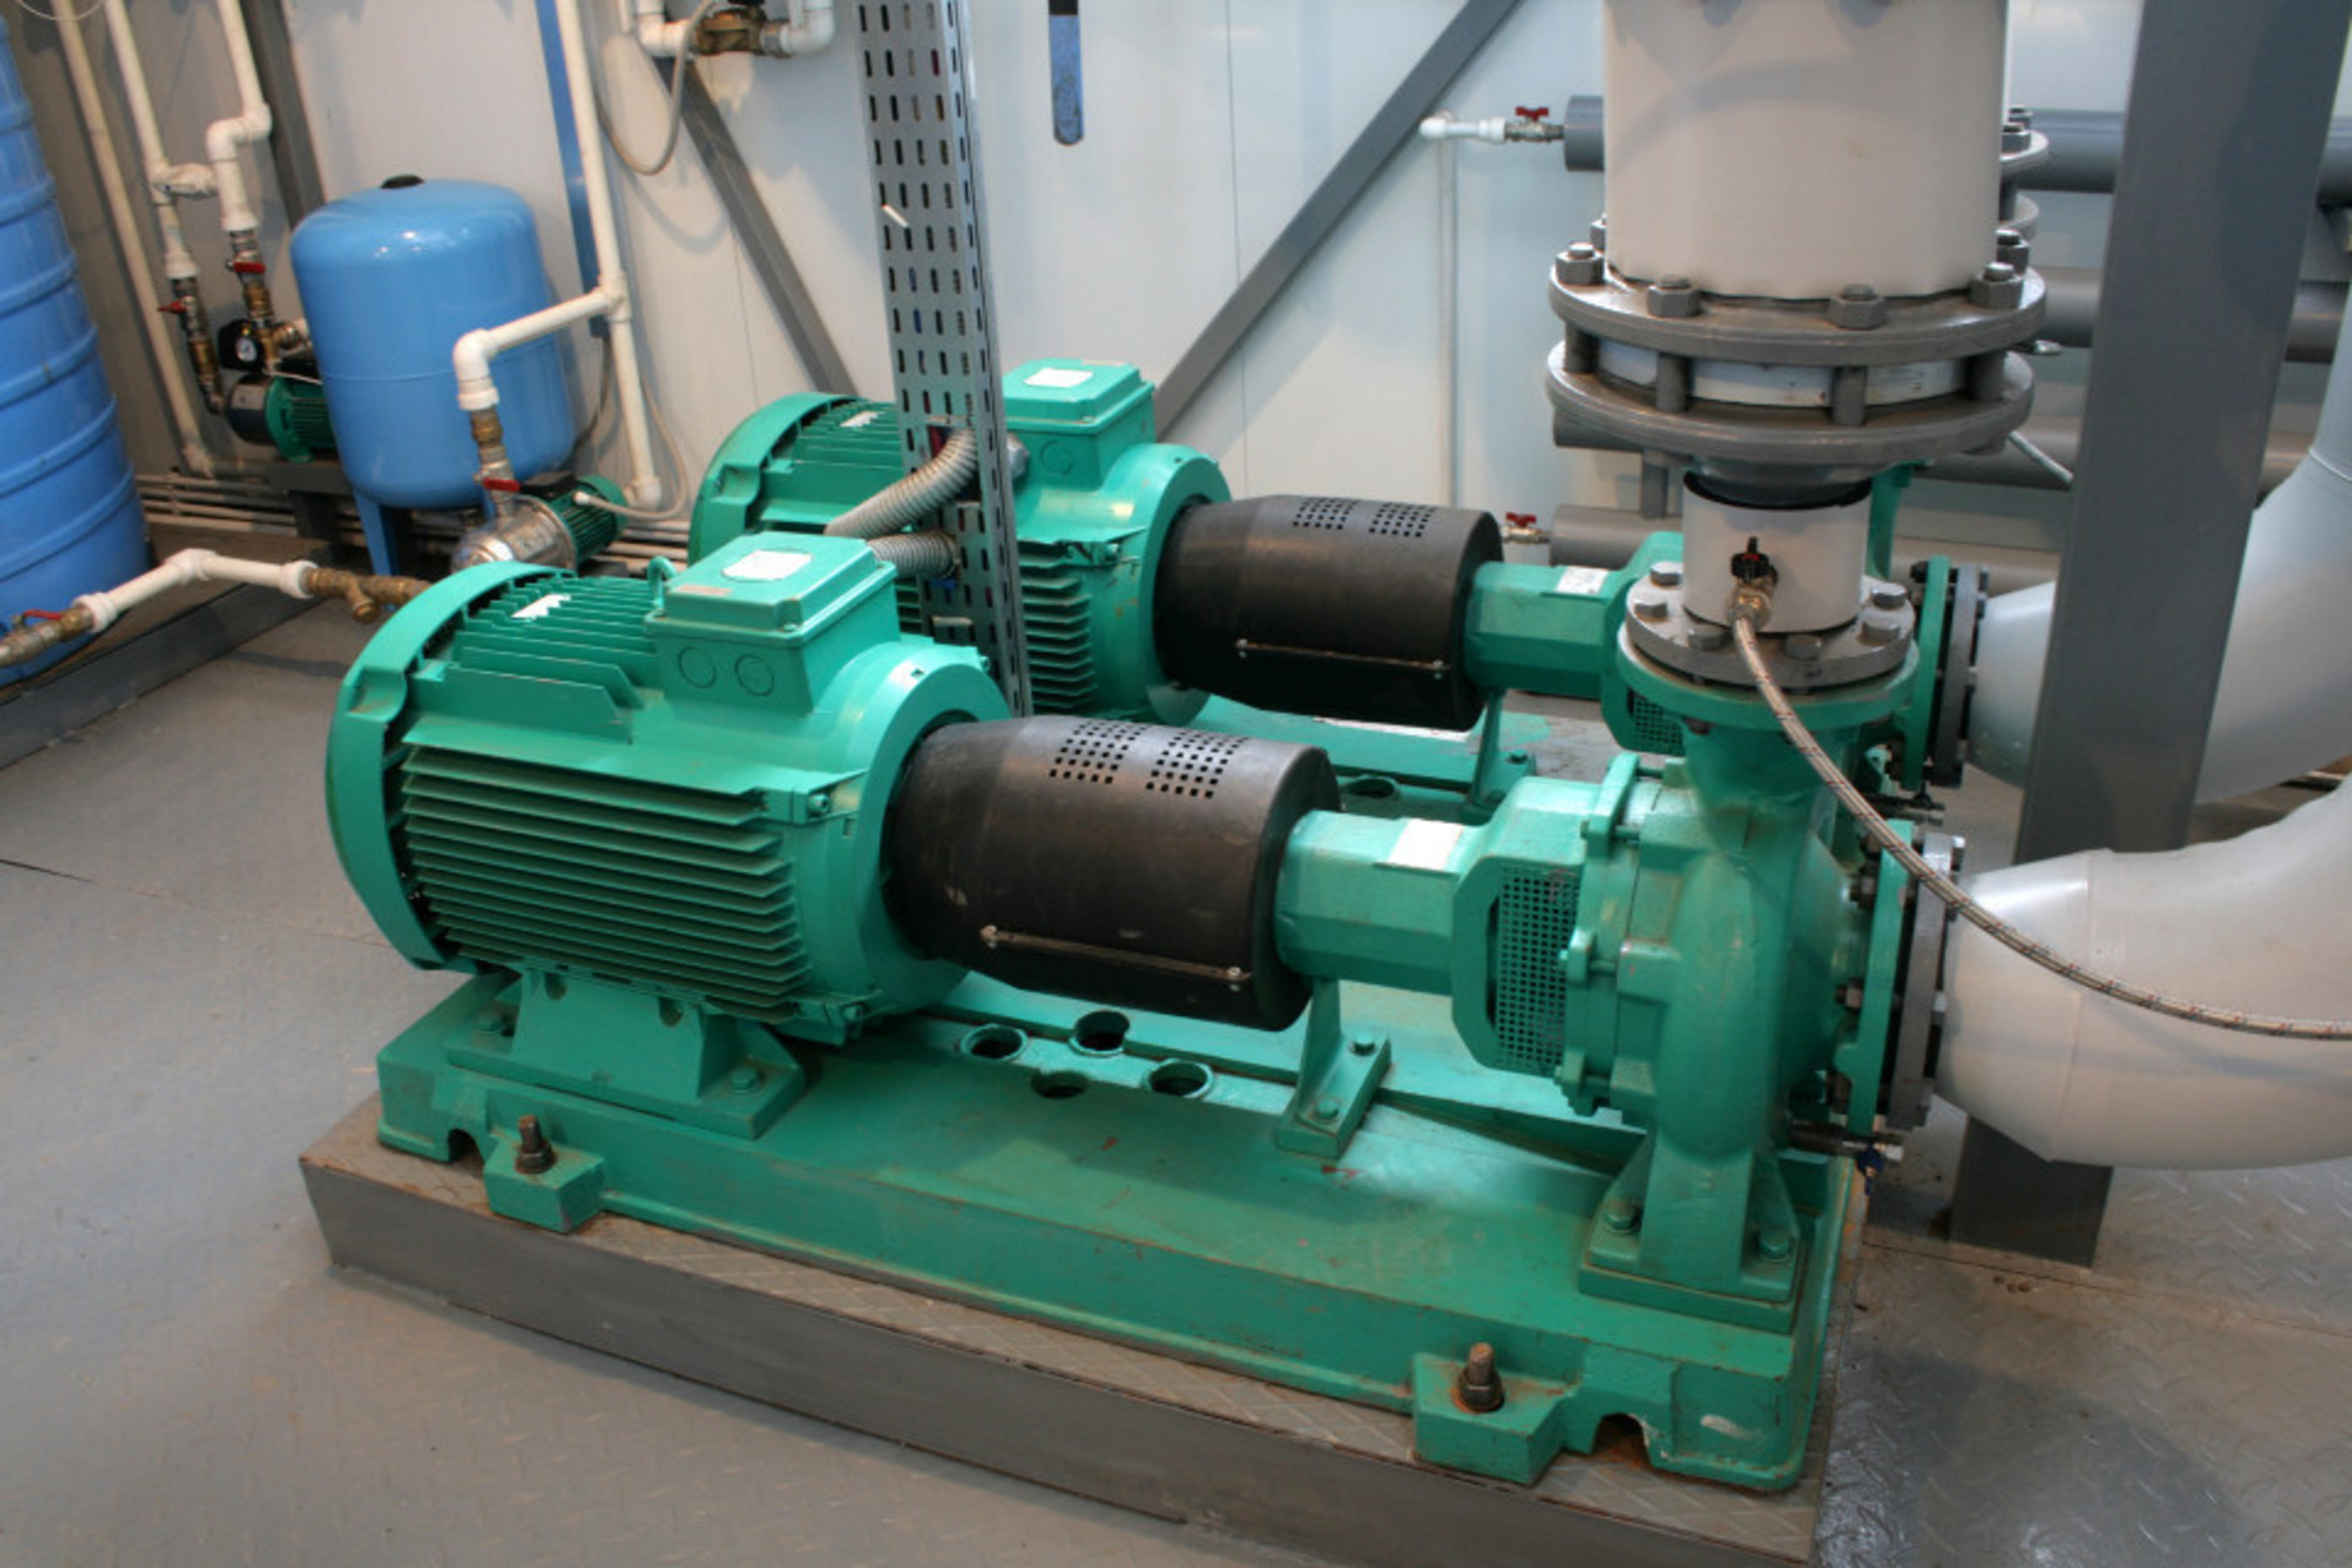 Pumps Manufacturers Overcome Unstable Global Conditions by Adapting to Technology